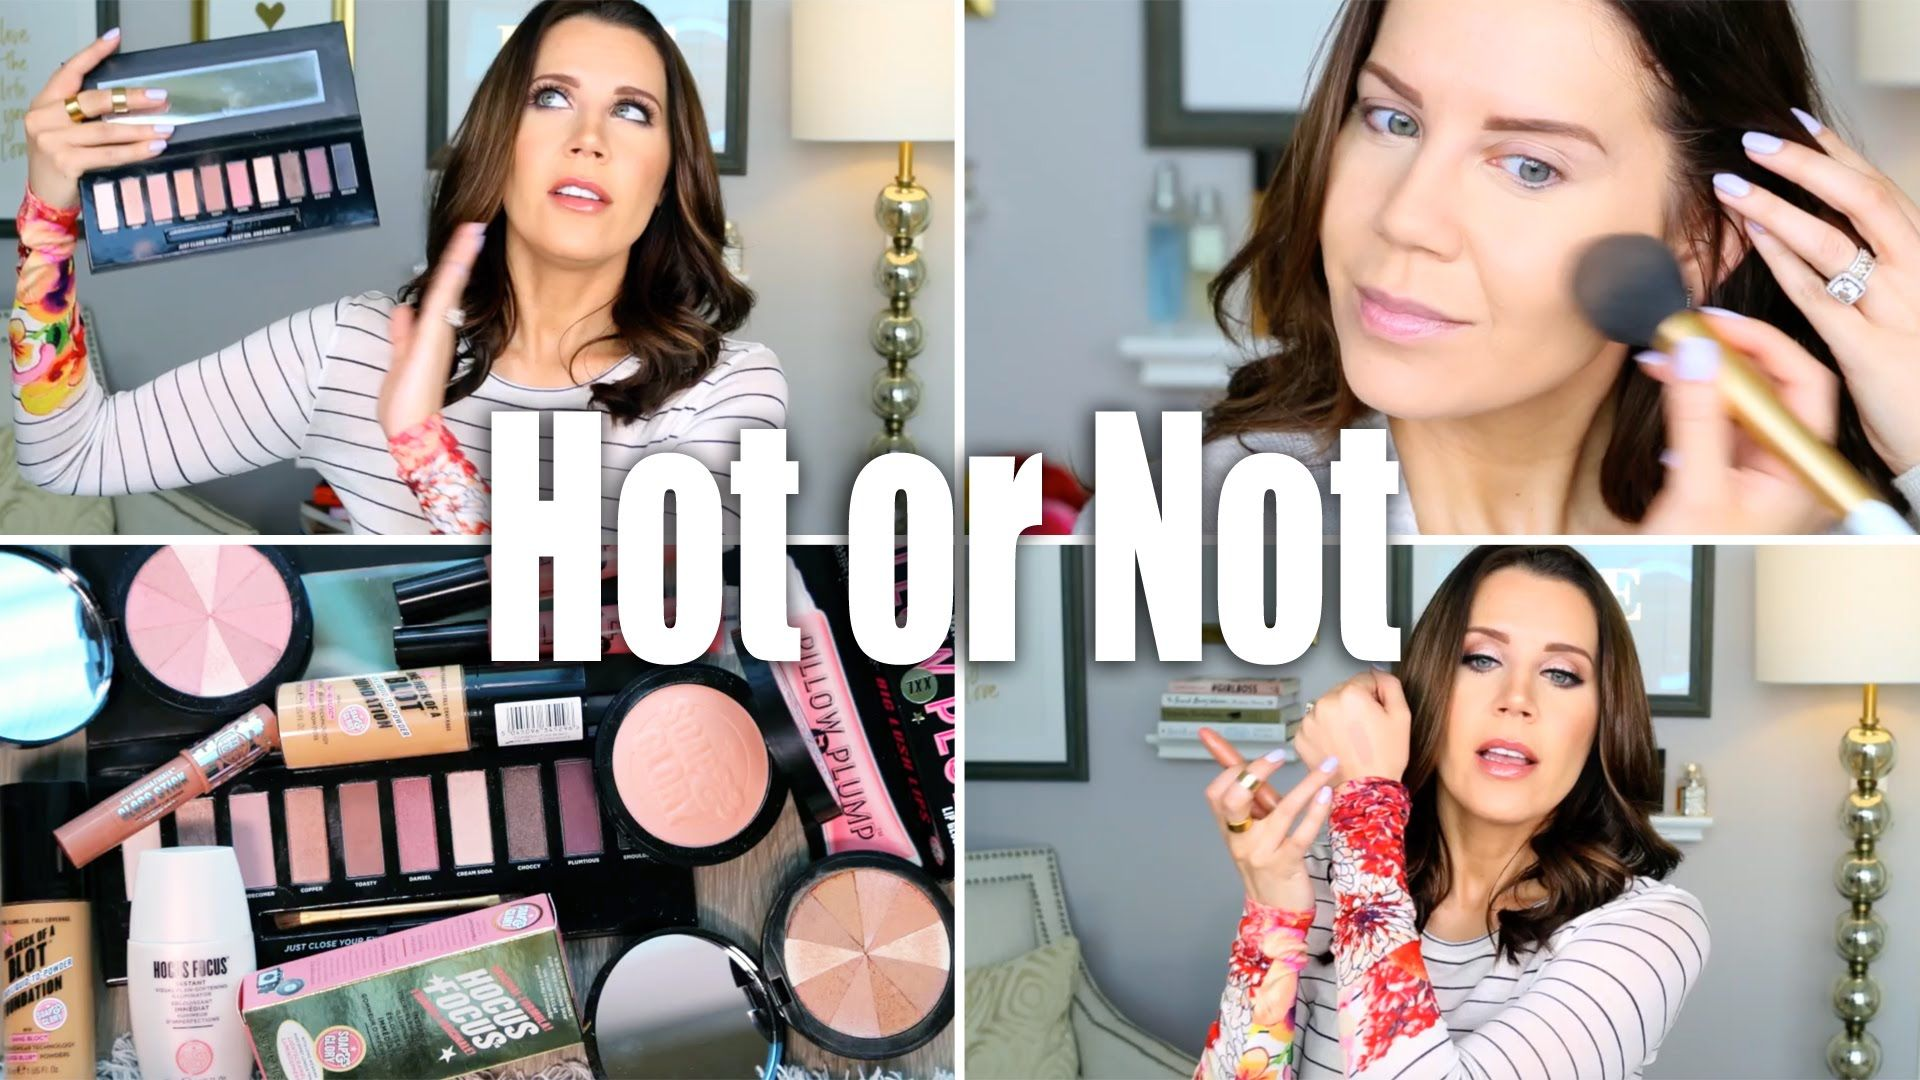 SOAP AND GLORY Makeup Hot or Not Soap and glory makeup